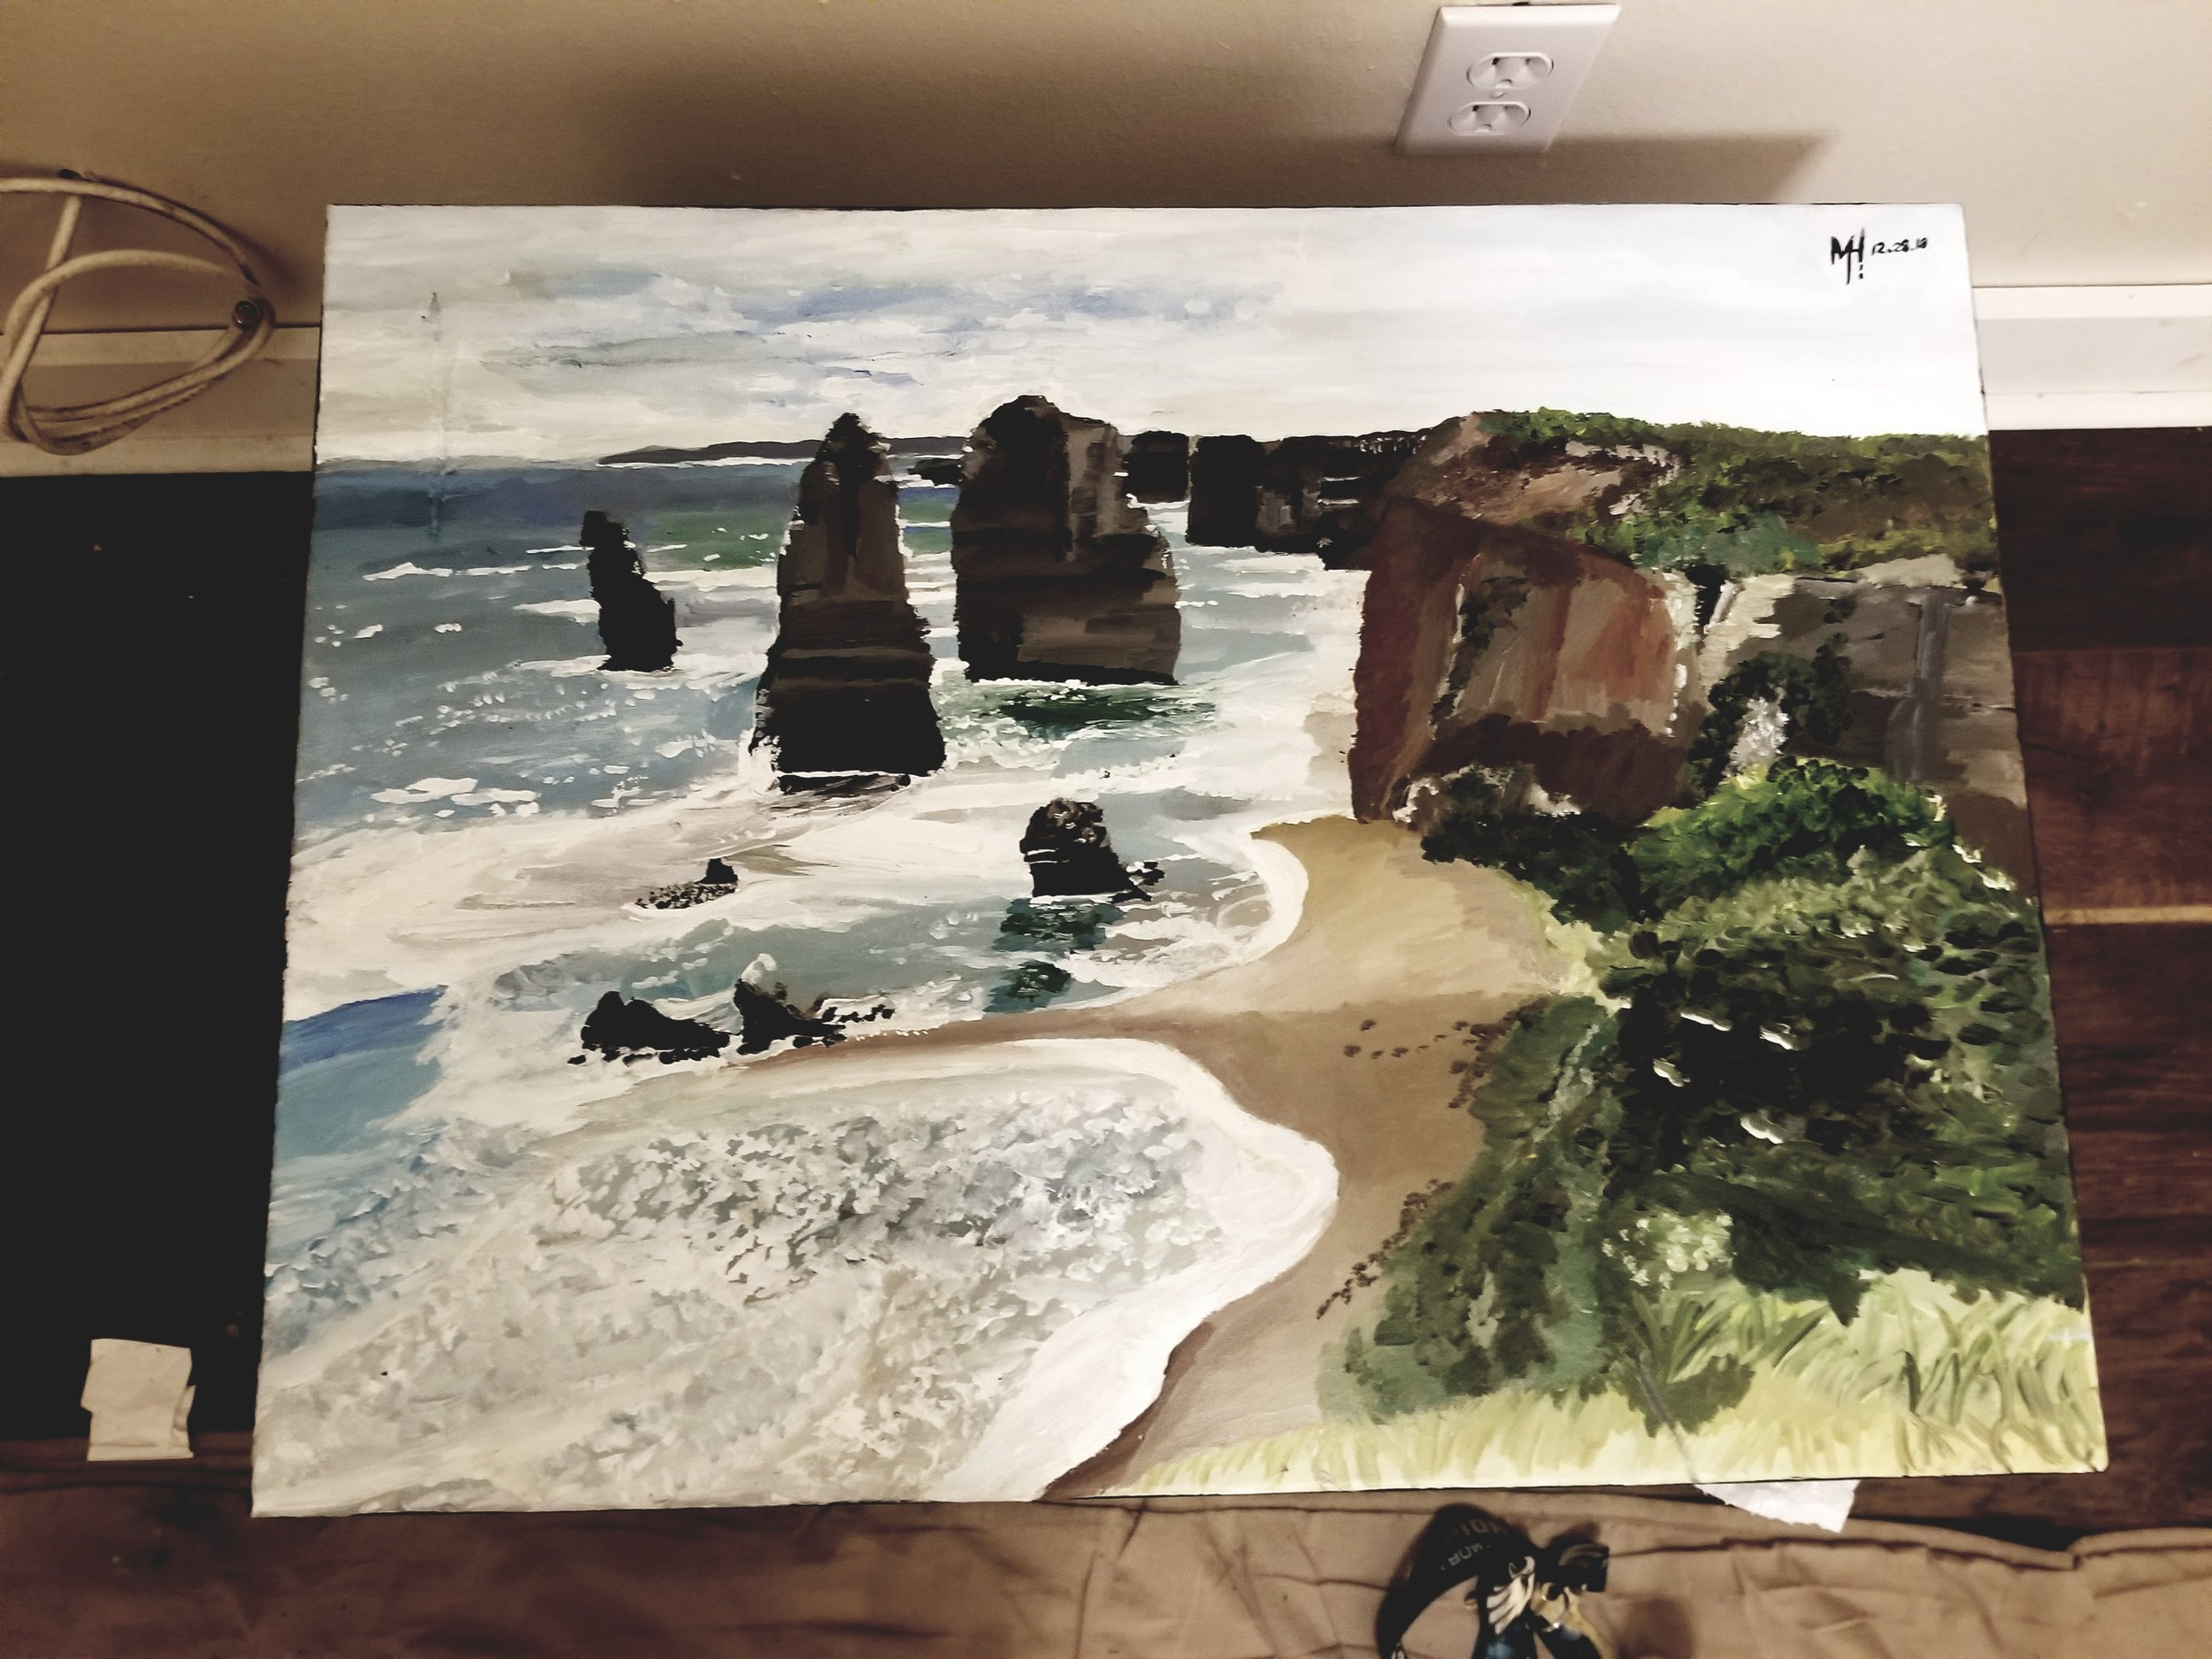 The finished product art painting project I did of the famous Twelve Apostles National Park view in Princetown, VIC Australia.